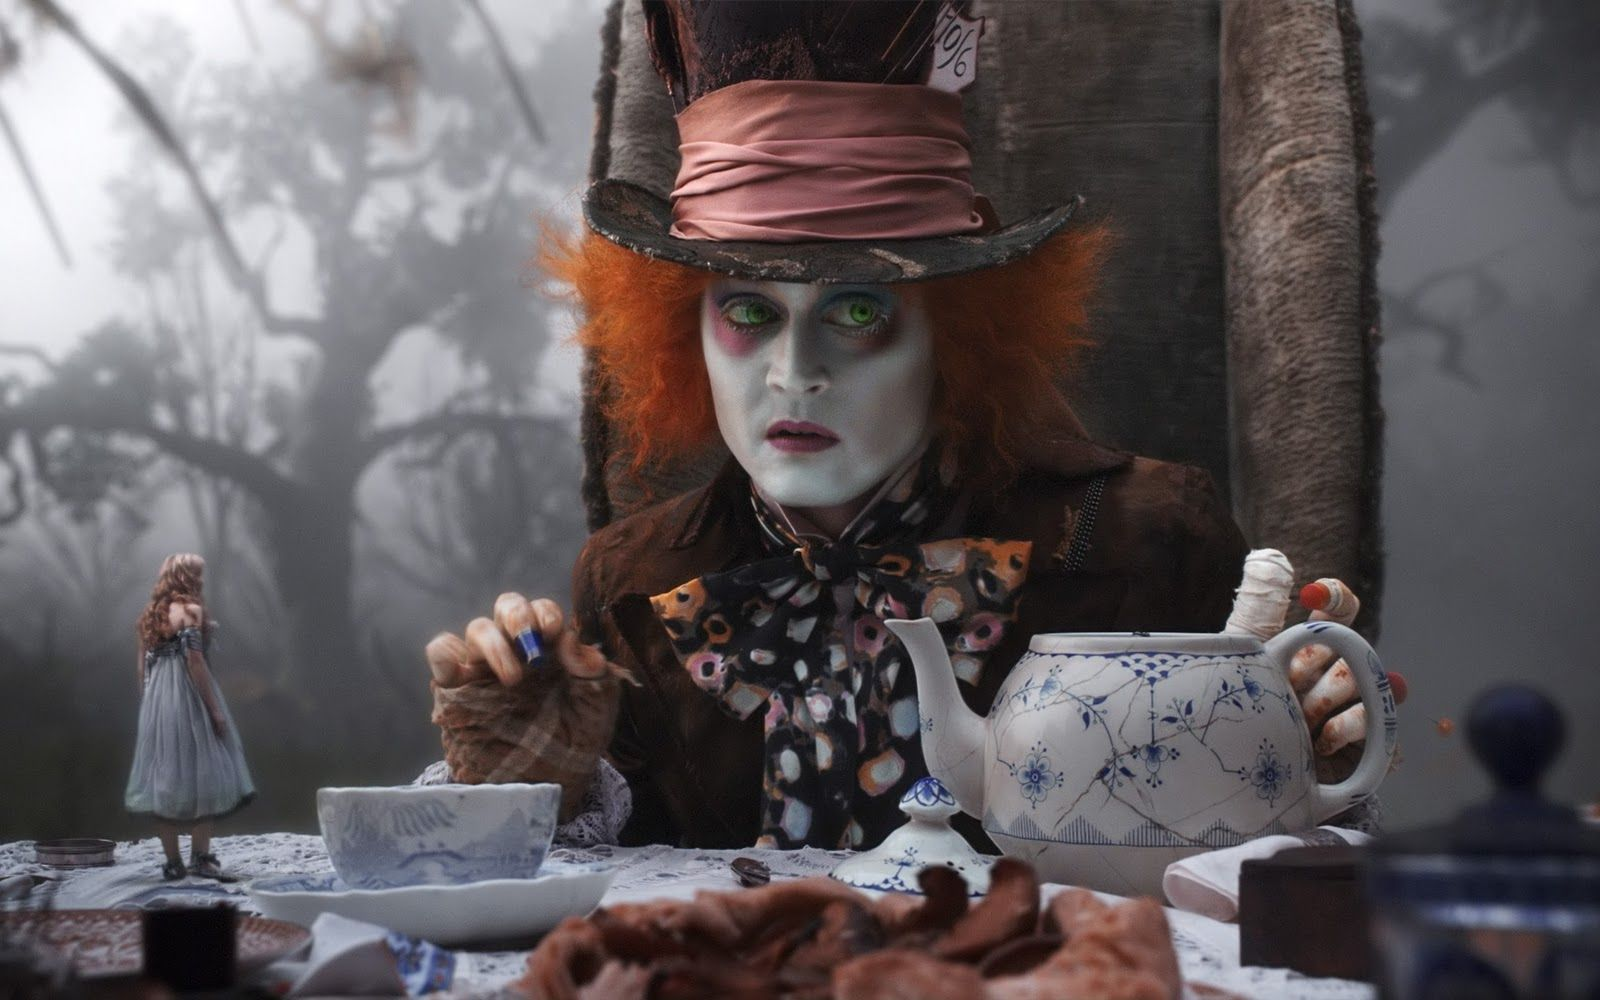 Mad hatter's tea party.